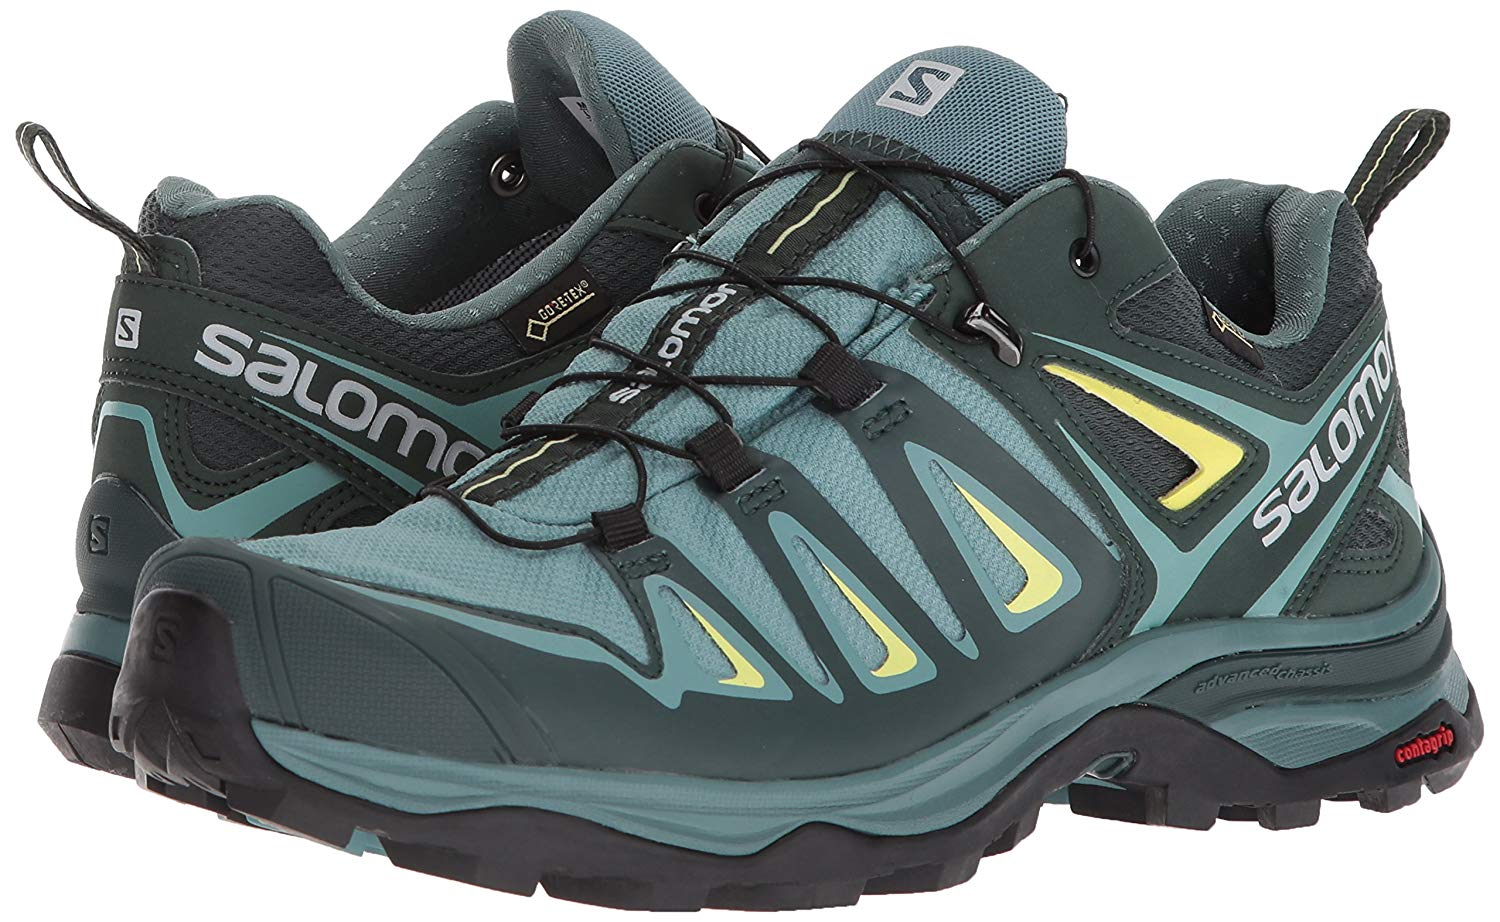 tabla tallas zapatillas salomon urbanas womens